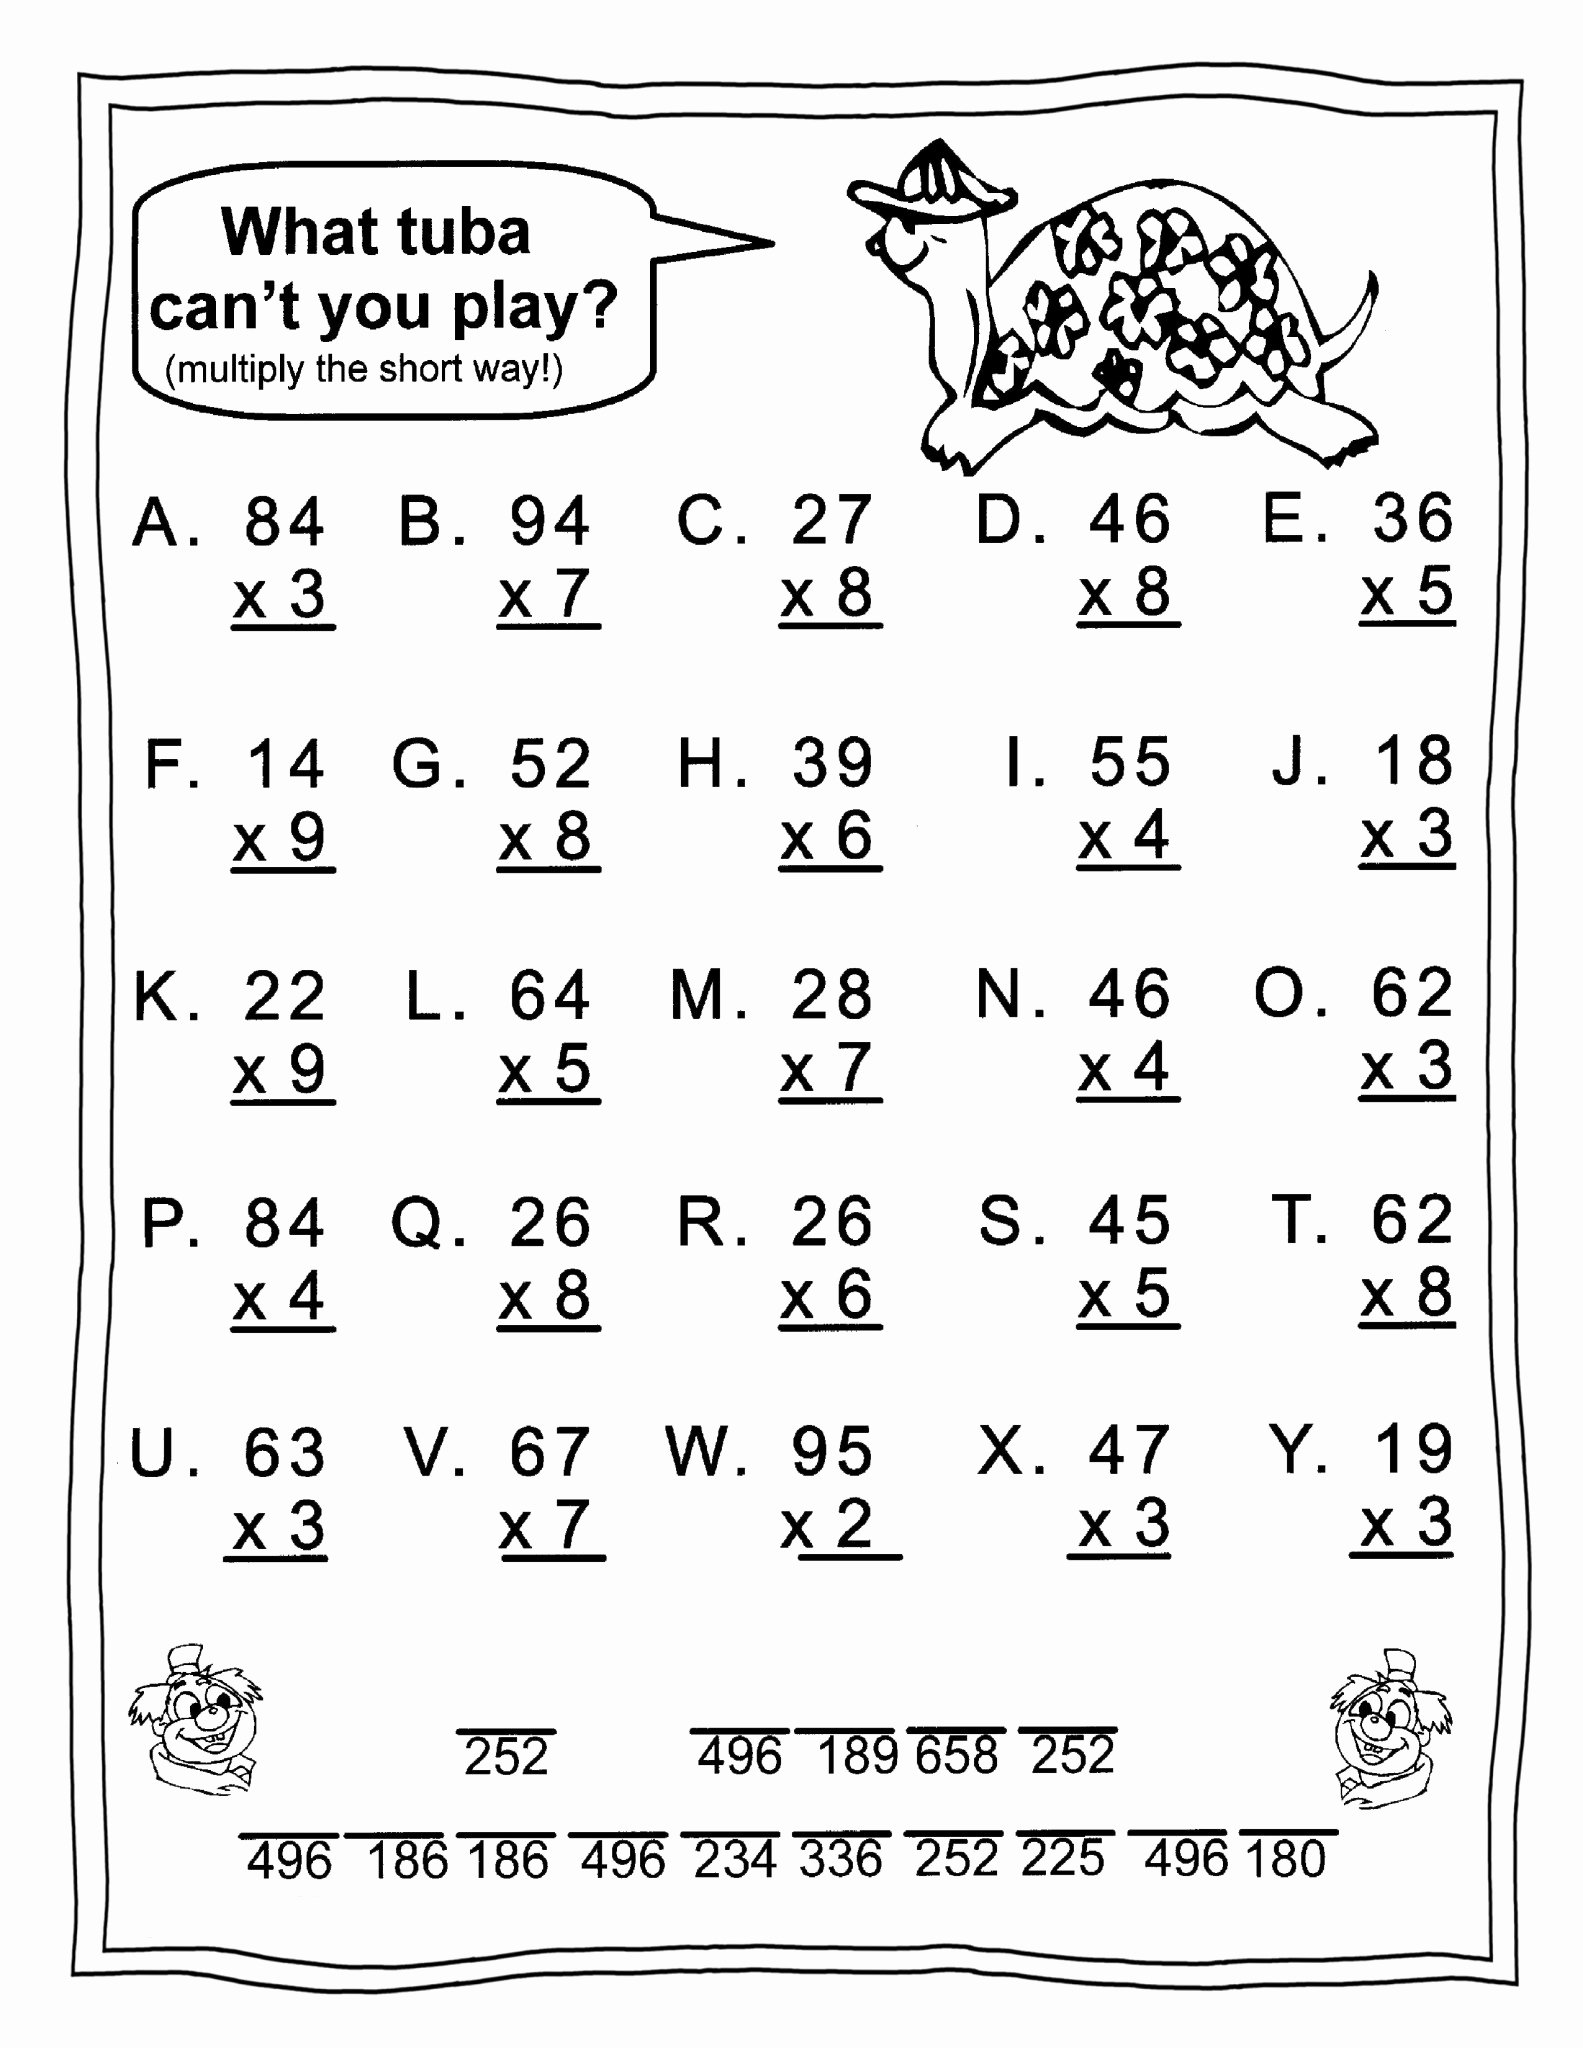 Multiplication Worksheets Free Printable 3rd Grade Best Of Worksheets 3rd Grade Math Worksheets Best Coloring for